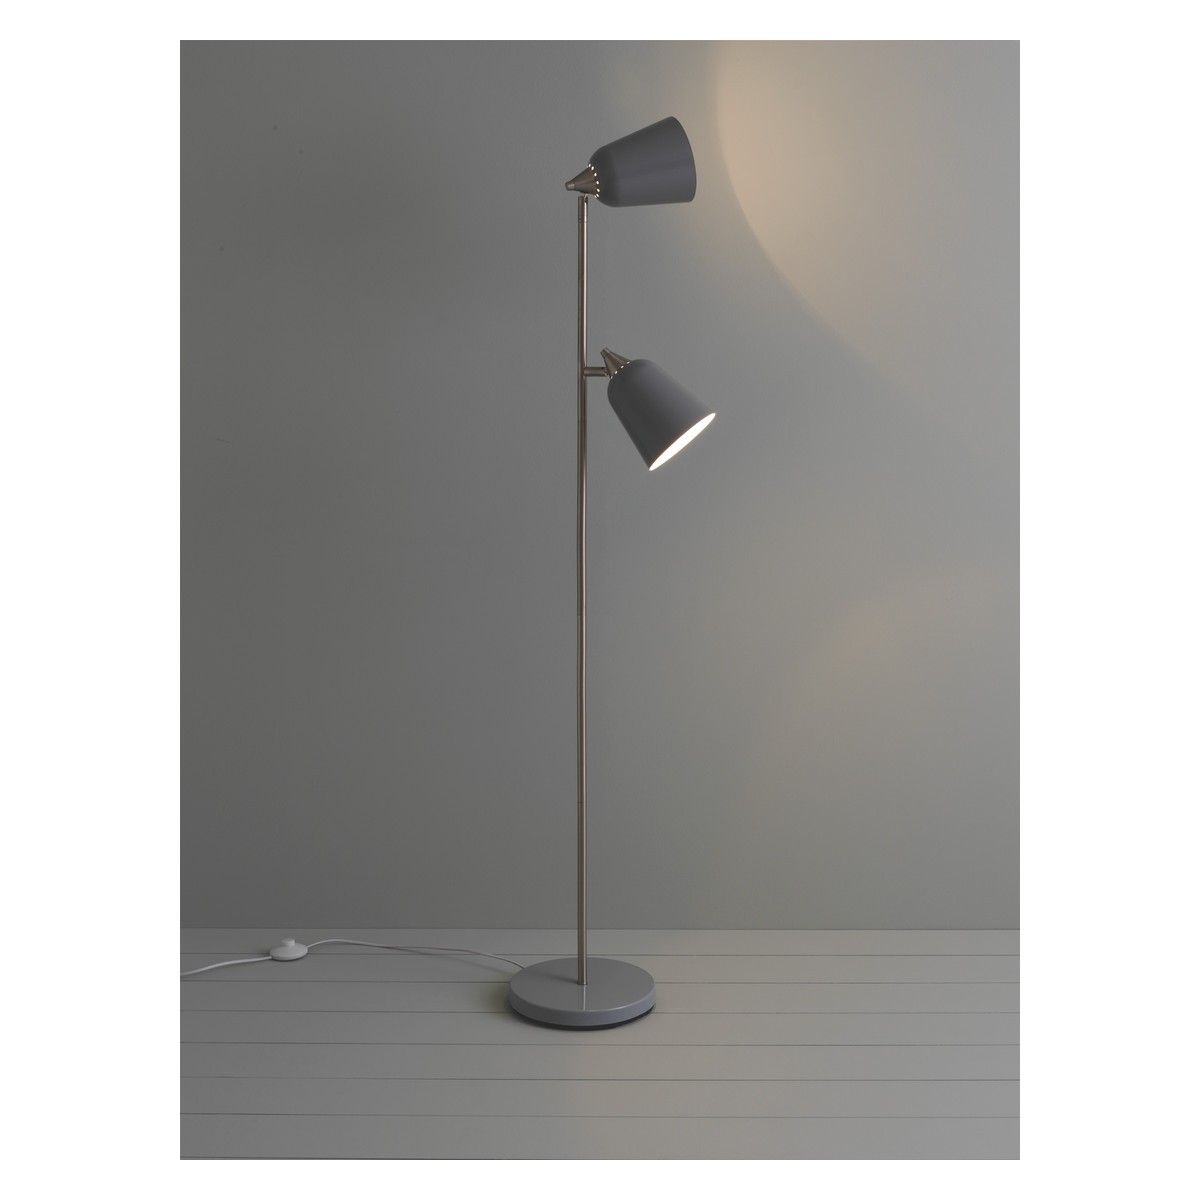 Double grey metal twin head floor lamp floor lamp twins and metals double grey metal twin head floor lamp aloadofball Images